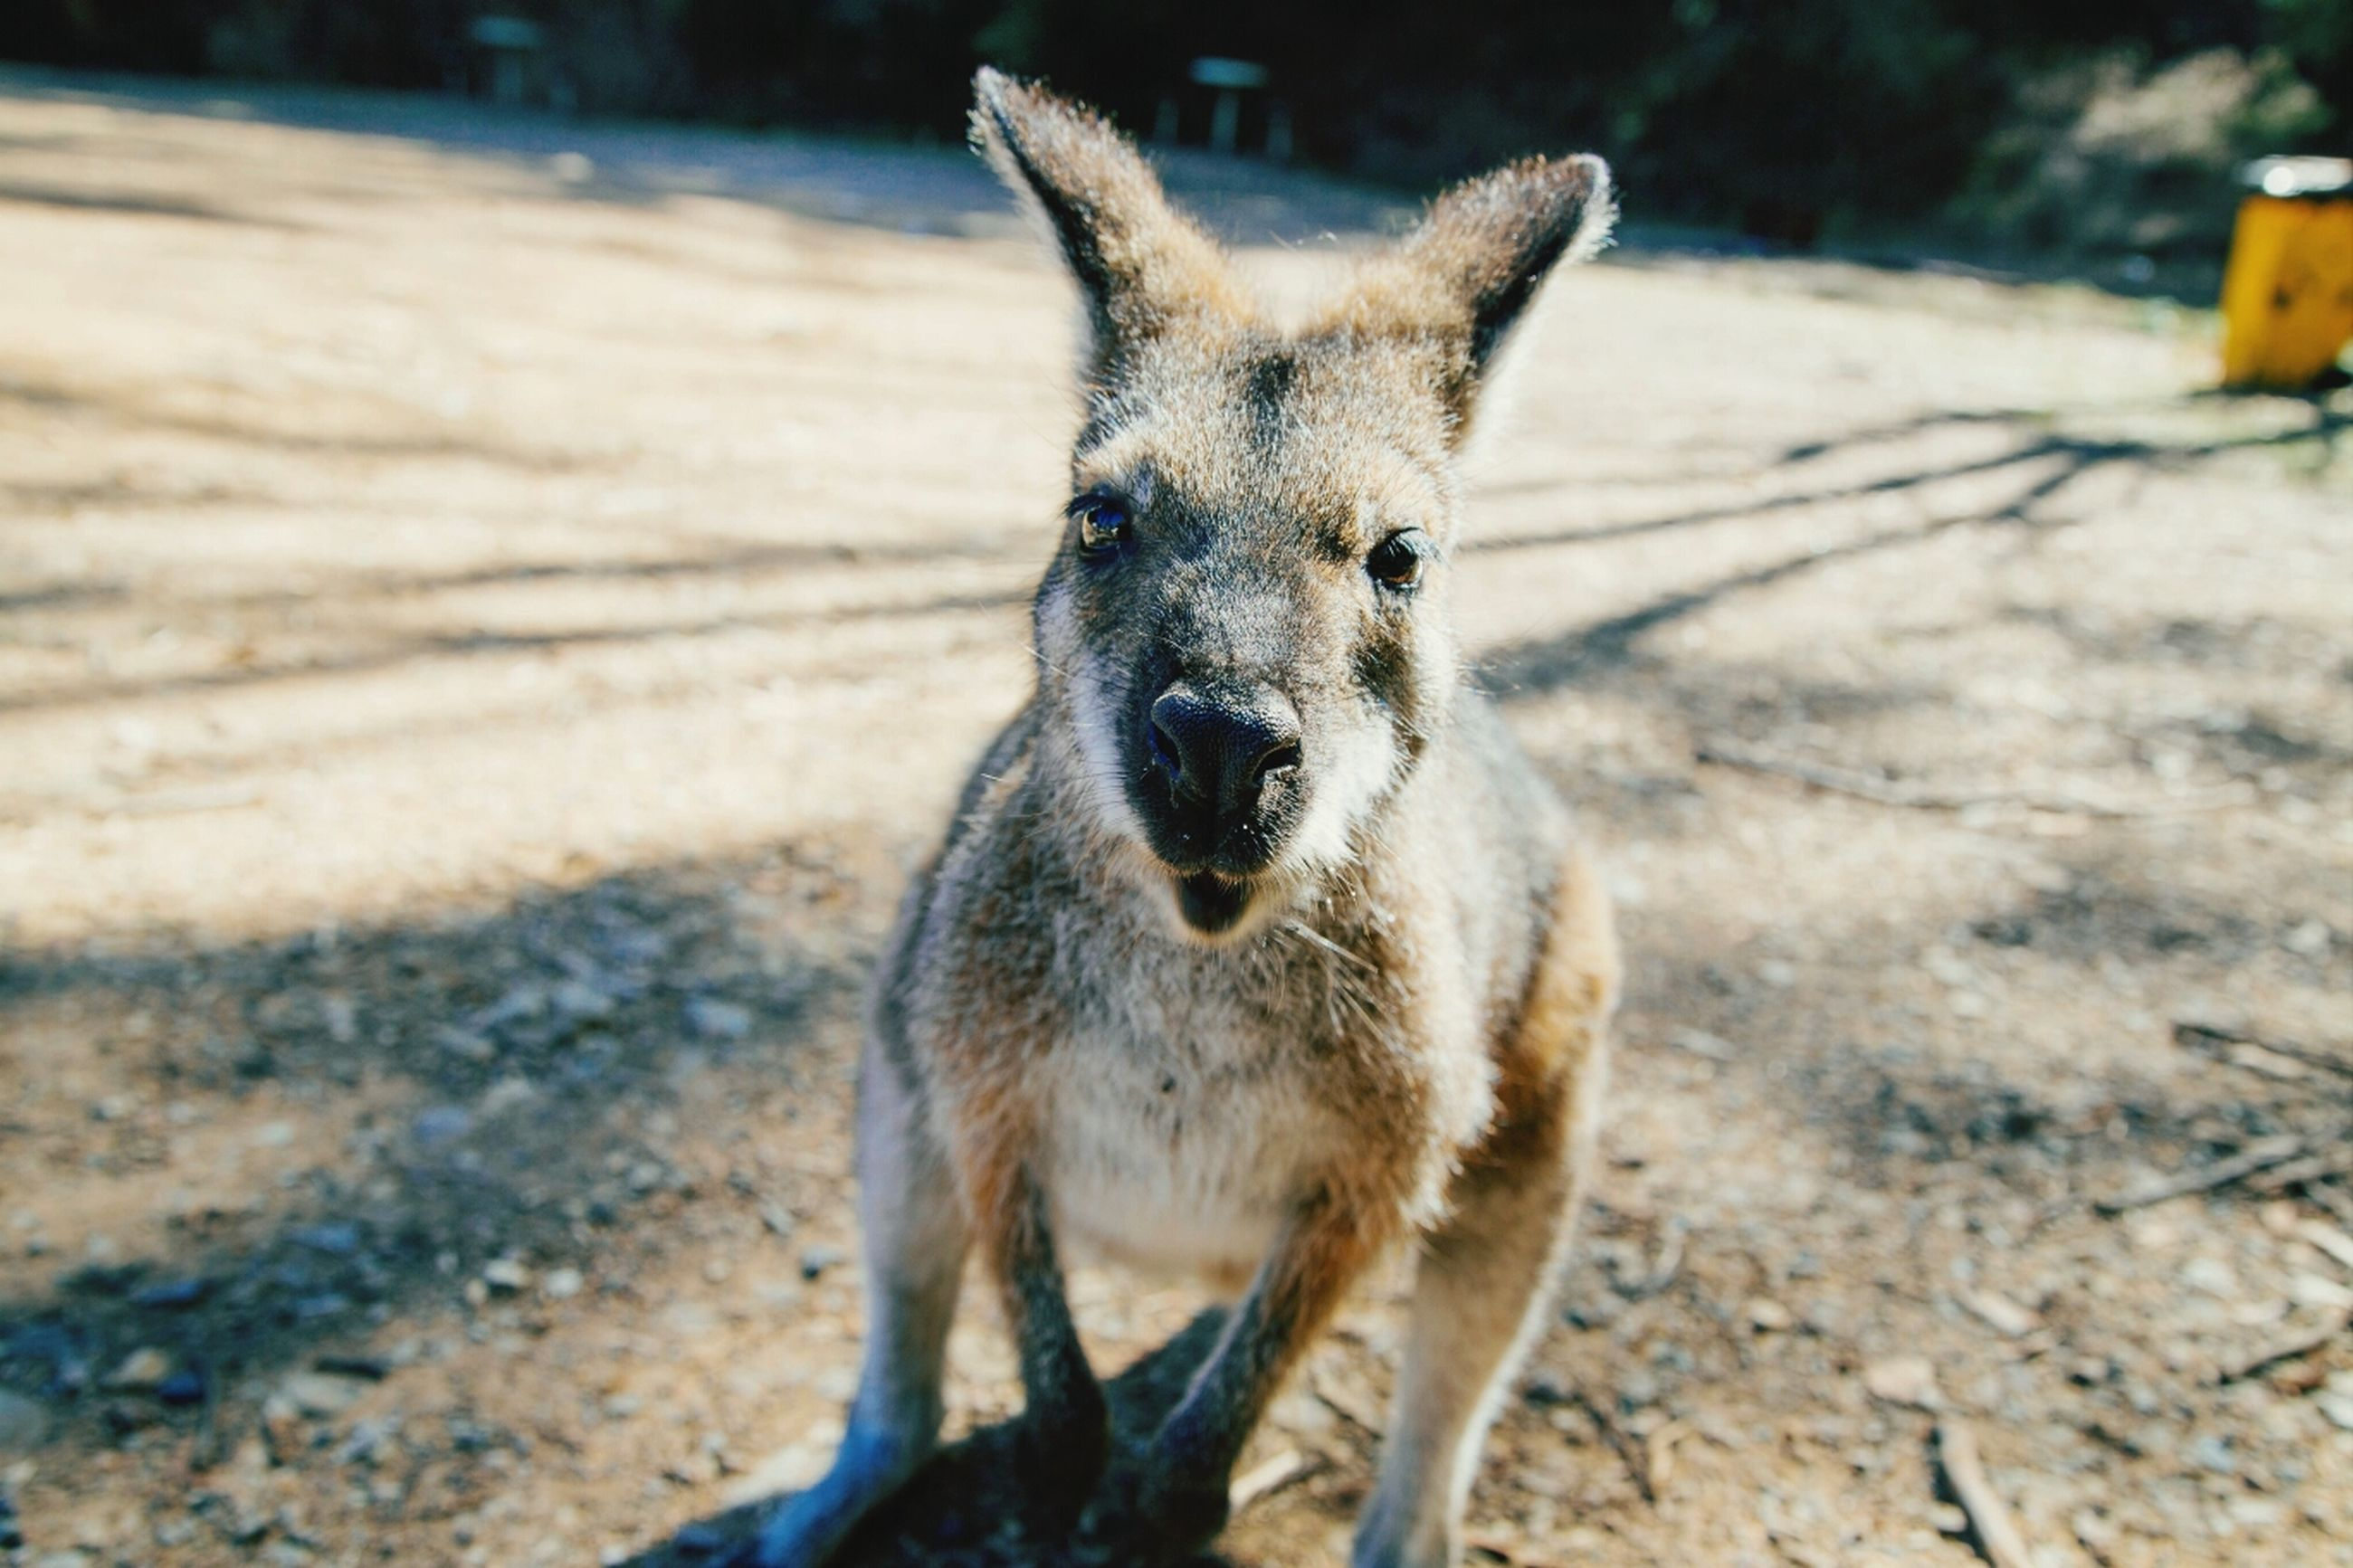 animal themes, one animal, mammal, focus on foreground, domestic animals, pets, portrait, looking away, close-up, standing, front view, animal head, sitting, whisker, outdoors, day, alertness, full length, wildlife